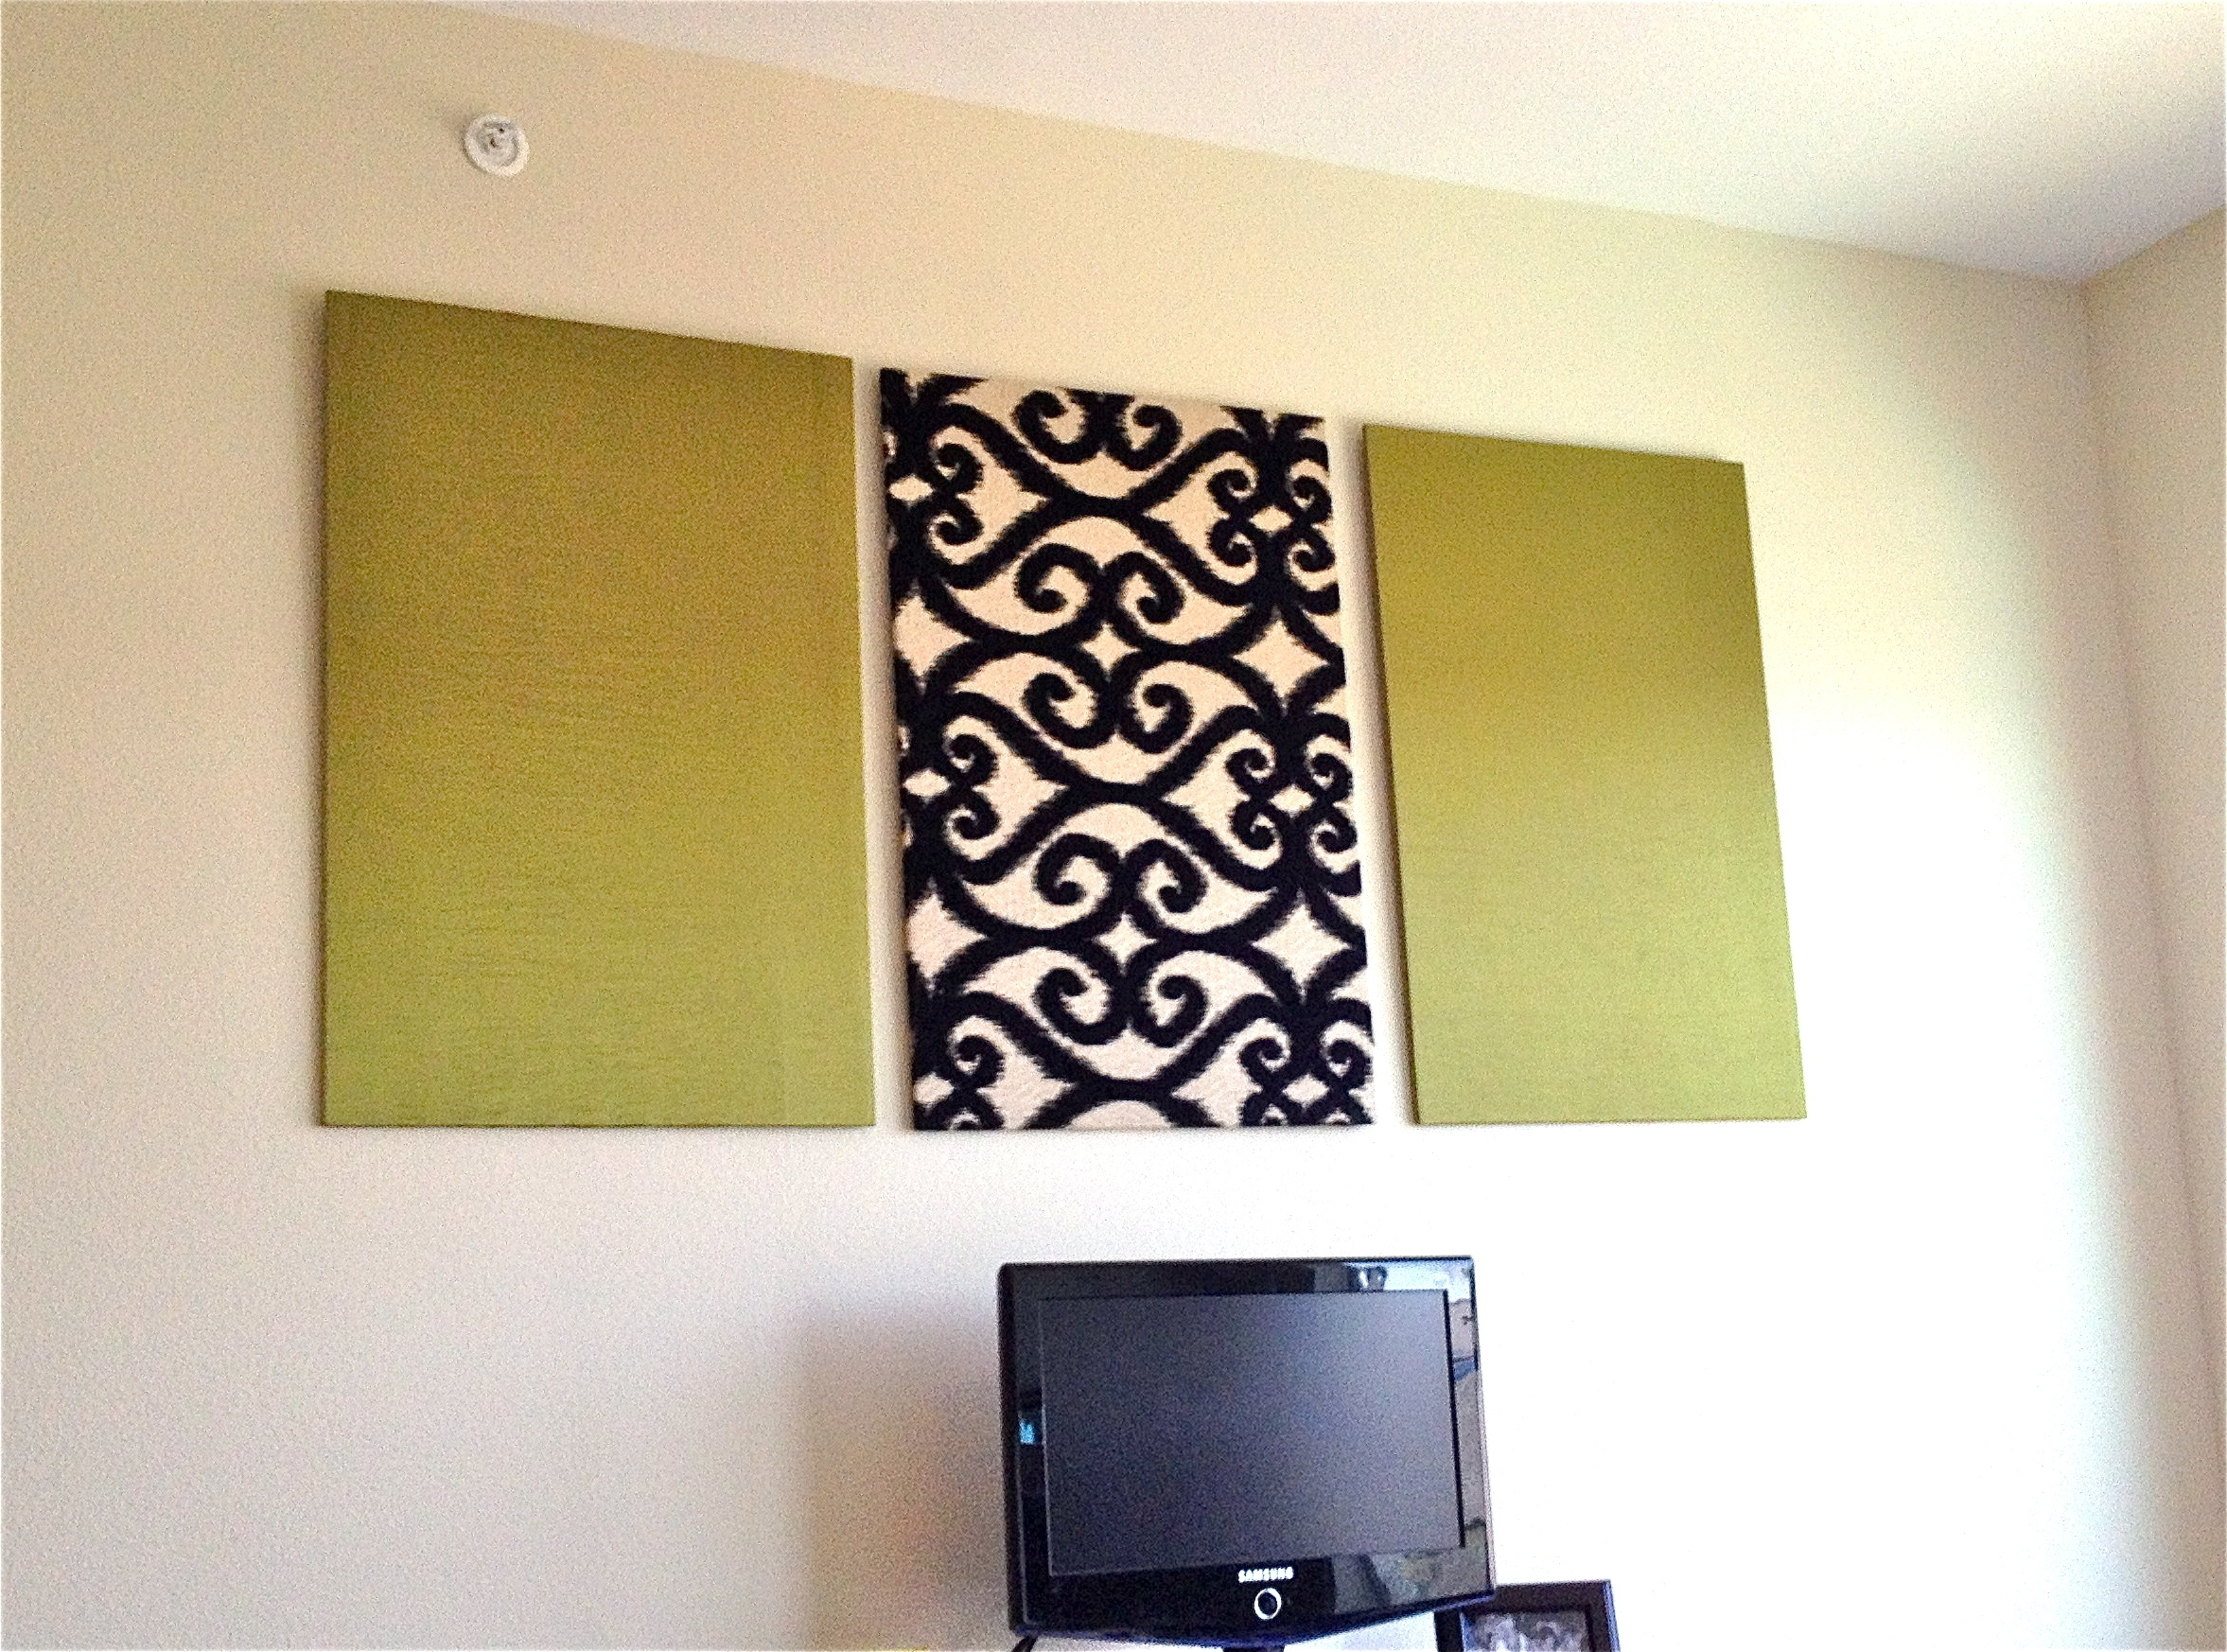 Diy Upholstered Wall Panels | Home Ideas | Pinterest | Upholstered Intended For Most Recent Diy Fabric Wall Art Panels (View 4 of 15)